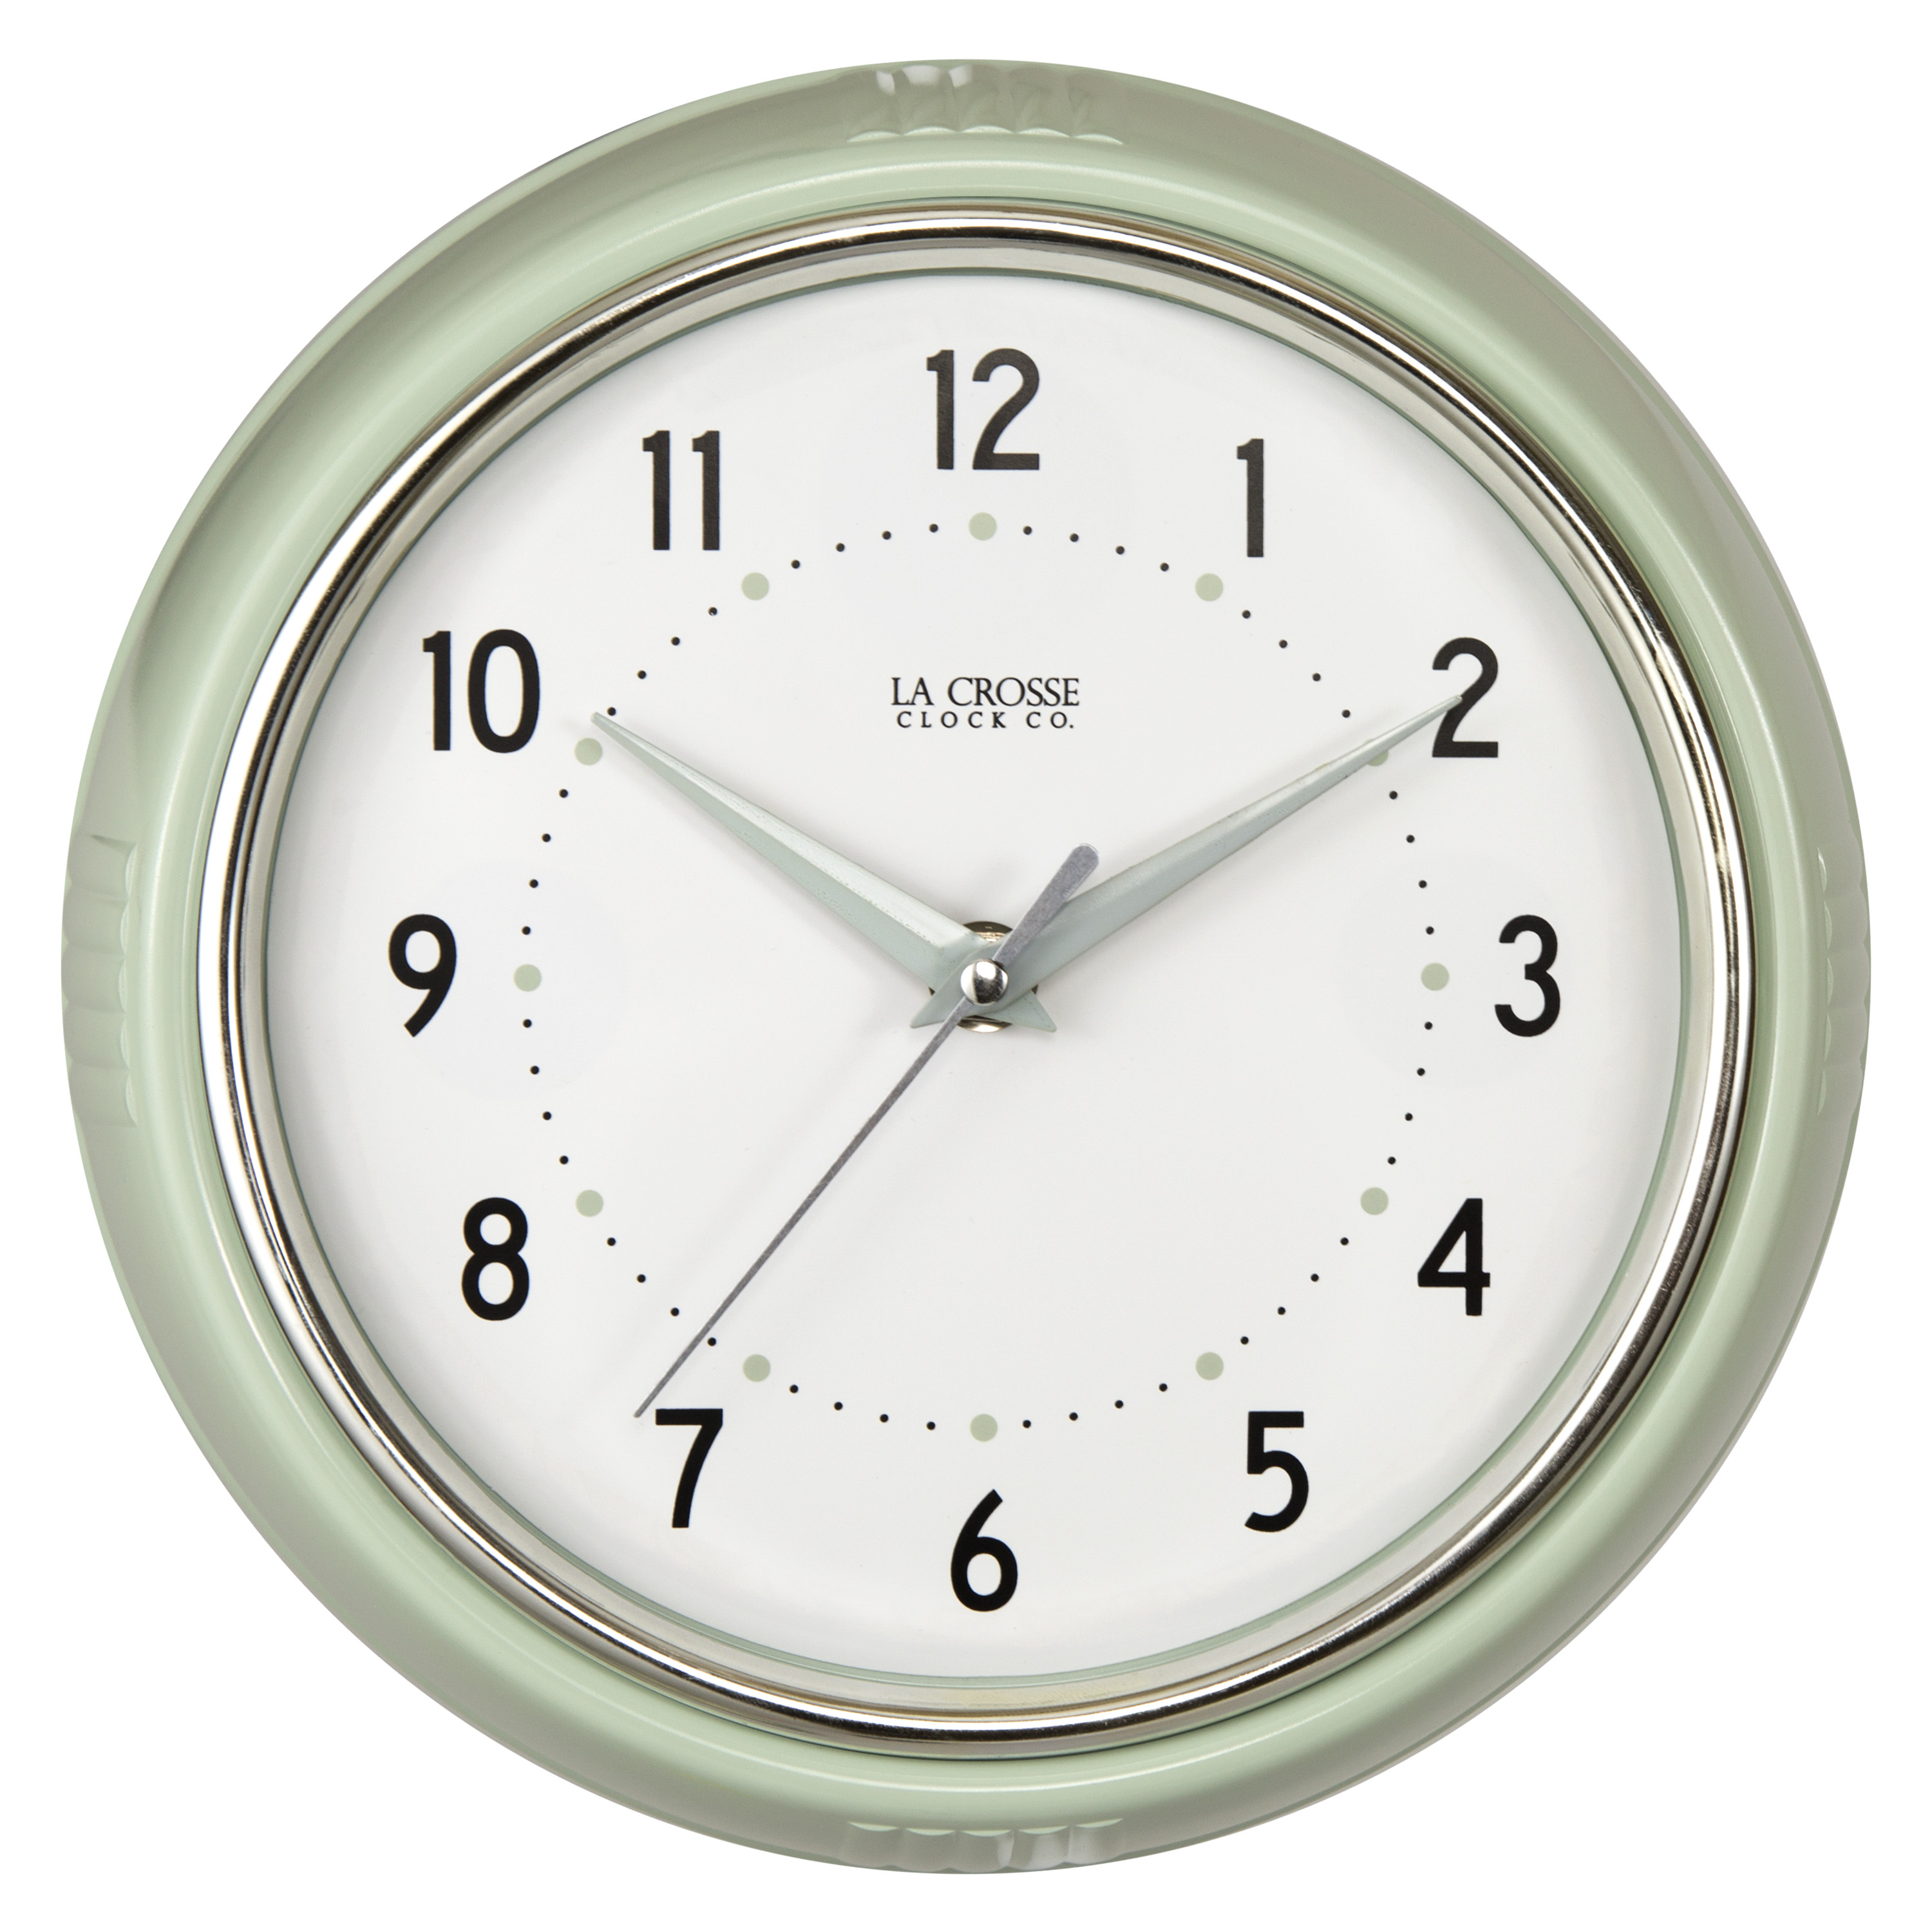 "La Crosse Clock 404-3024PH 9.5"" Retro Diner Pistachio Colored Analog Wall Clock"